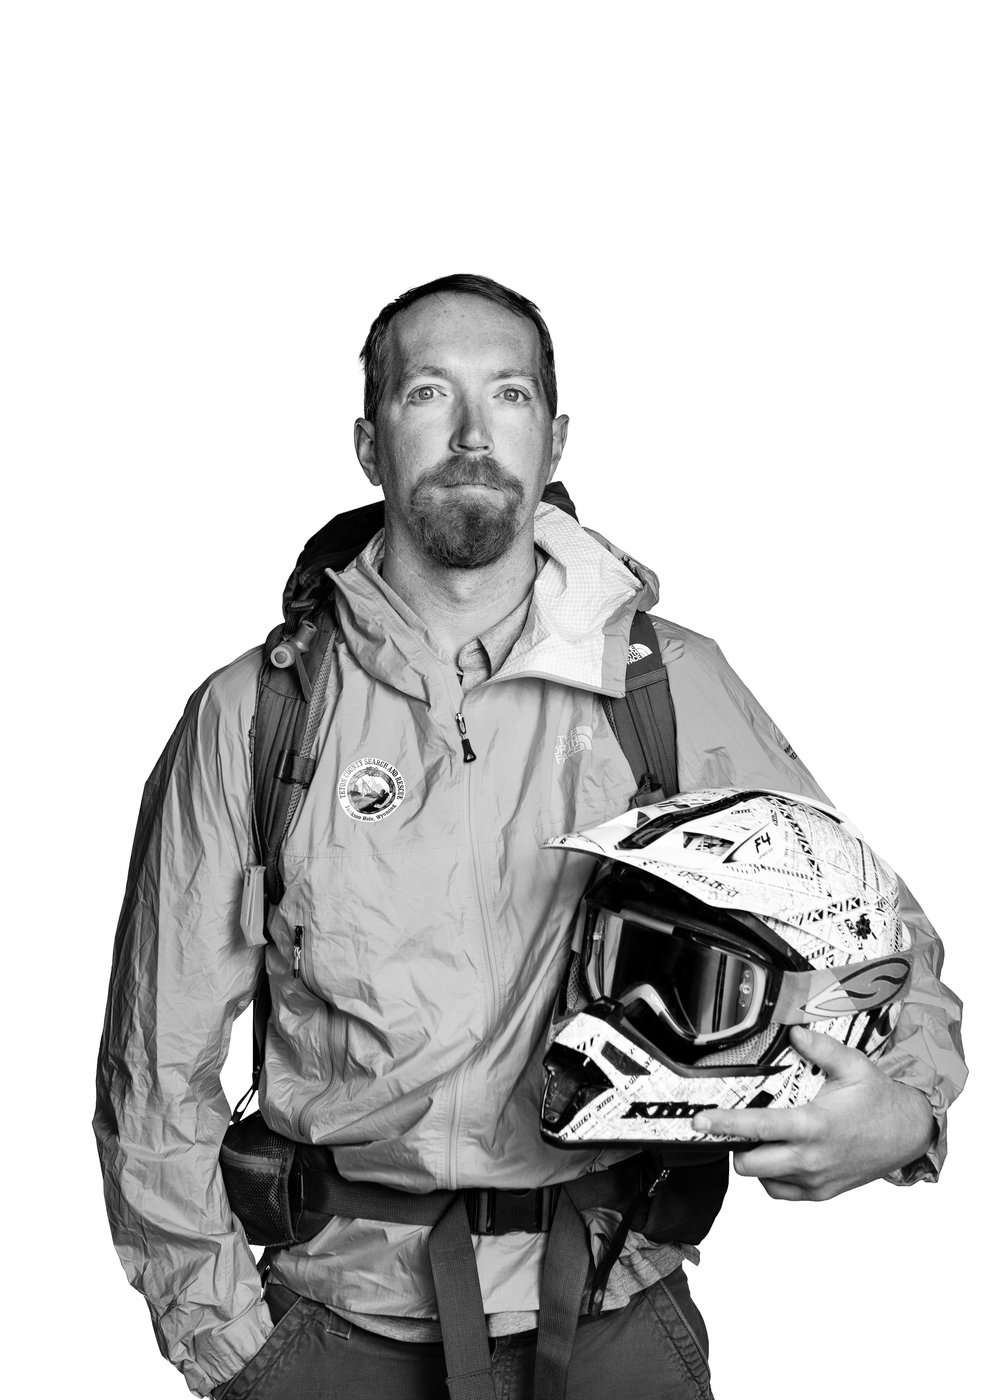 TCSAR volunteer Doug VanHouten